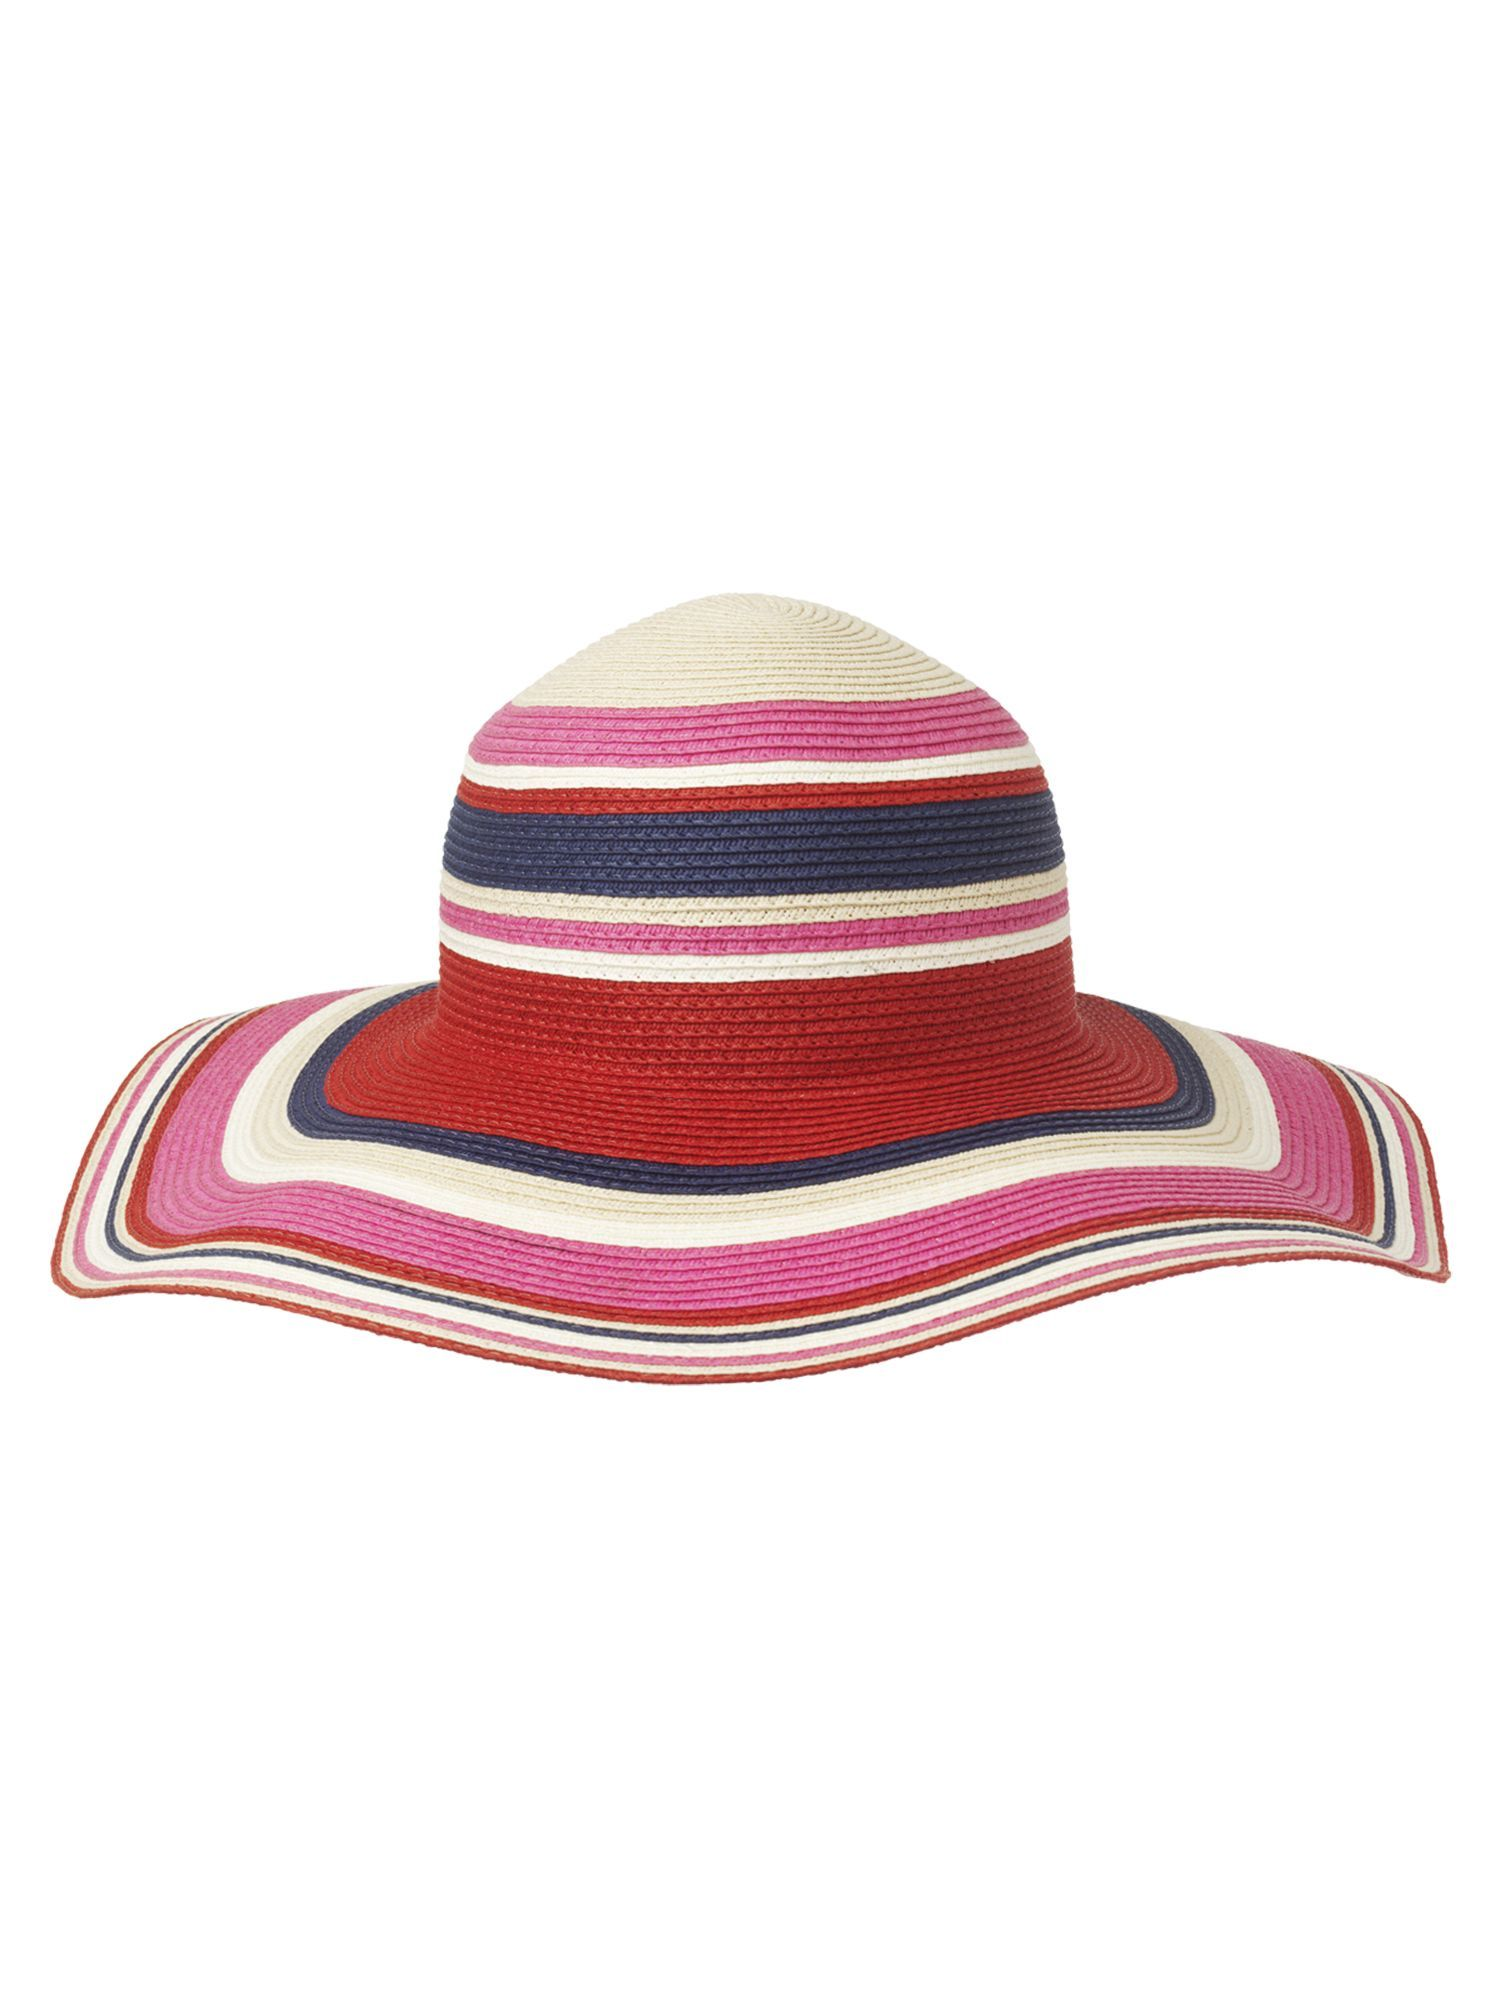 Multi Stripe Hat, Multi Coloured - predominant colour: multicoloured; type of pattern: standard; style: sunhat; size: large; material: macrame/raffia/straw; pattern: striped